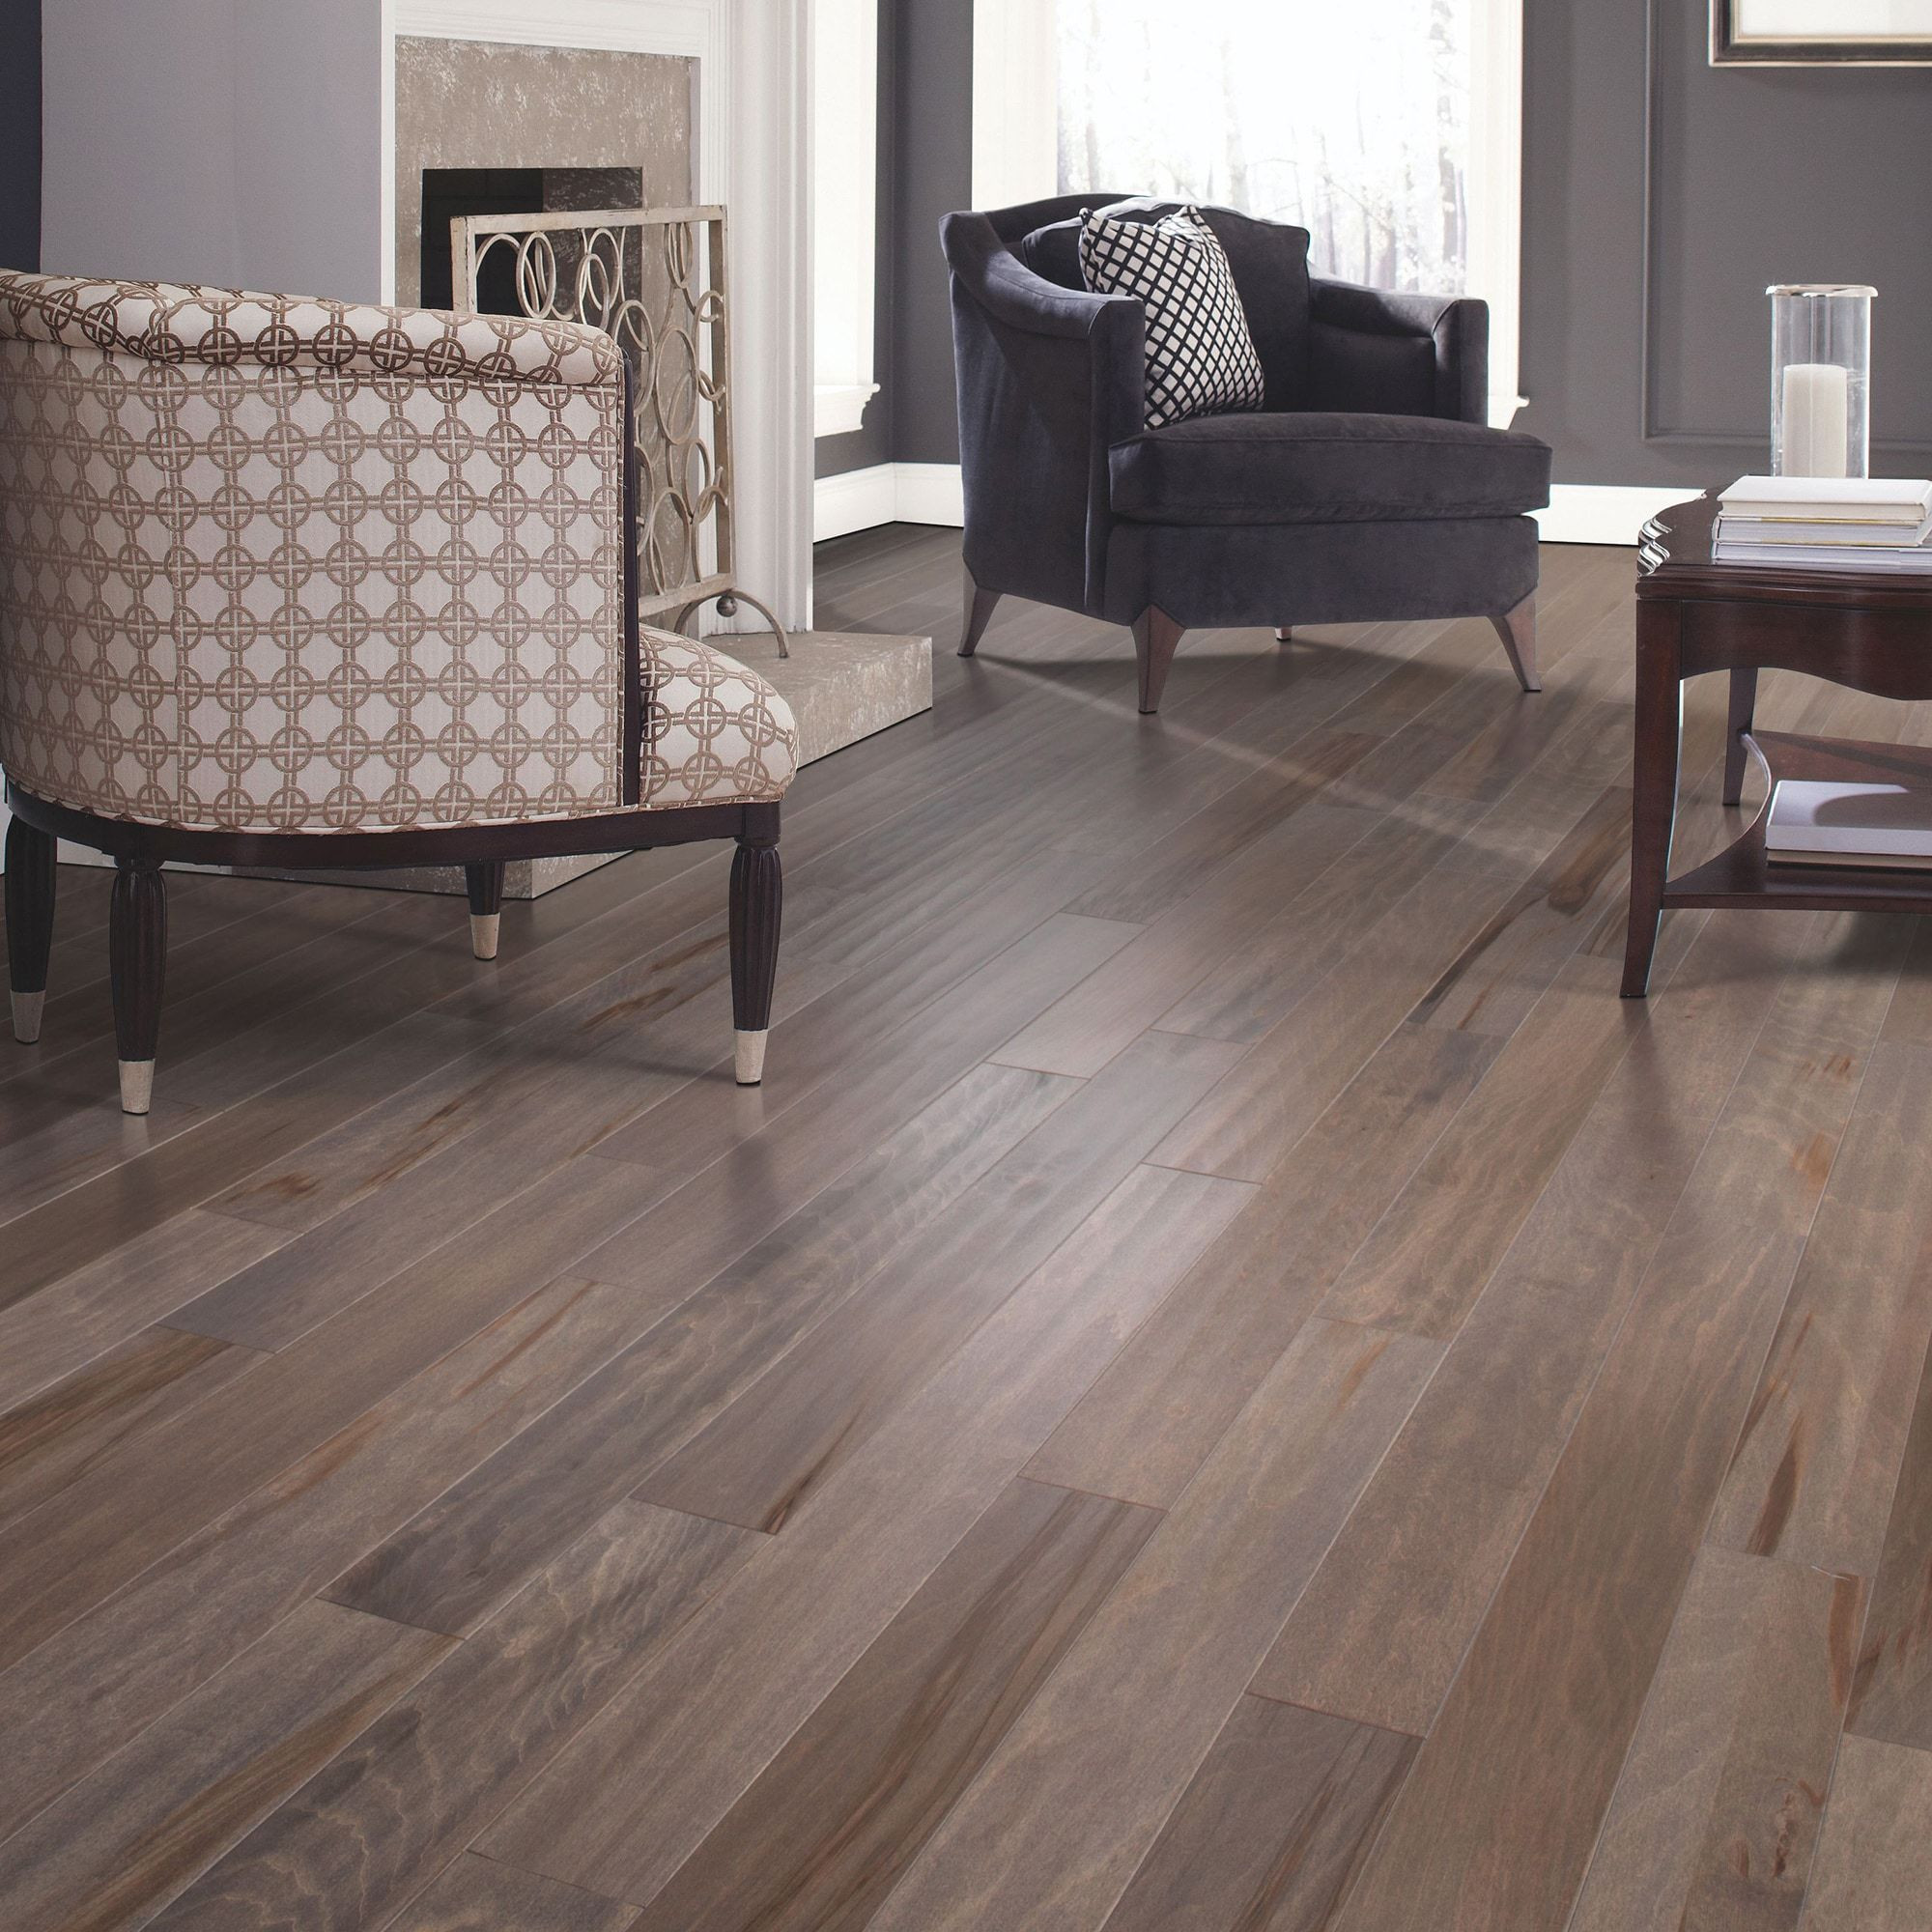 pictures of engineered hardwood floors of builddirecta mohawk flooring engineered hardwood ageless allure with regard to builddirecta mohawk flooring engineered hardwood ageless allure collection